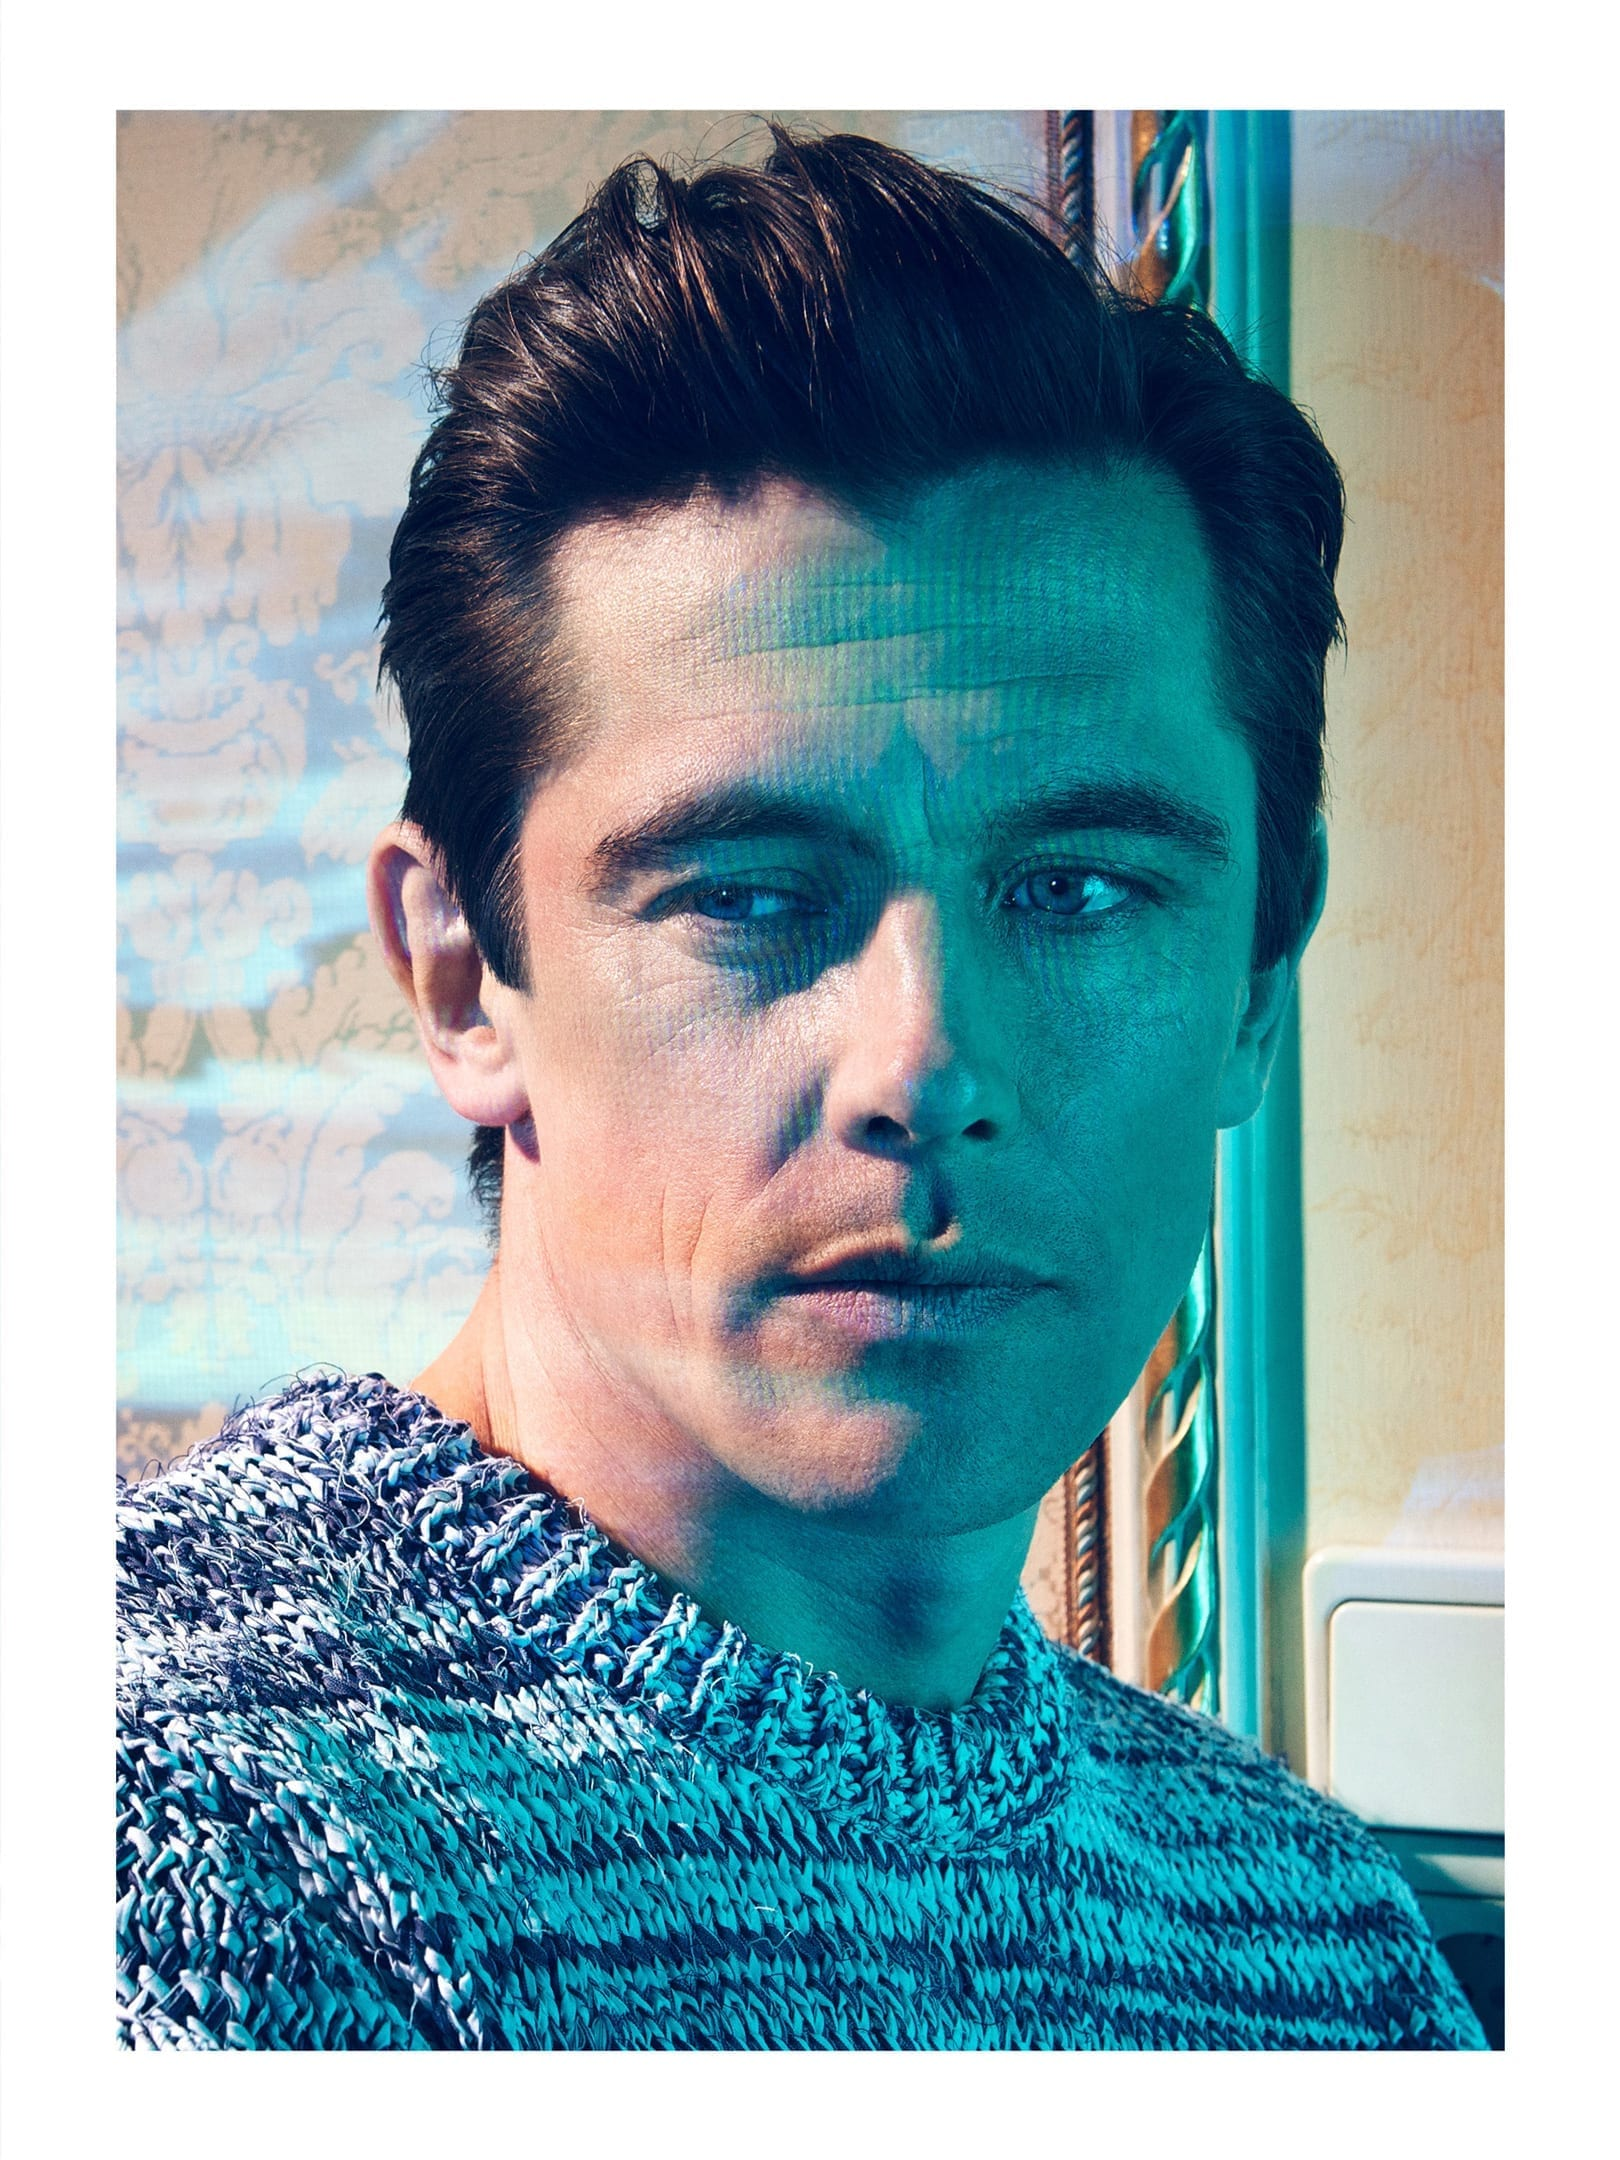 LOUIS VUITTON_Aqua // Werner Schreyer